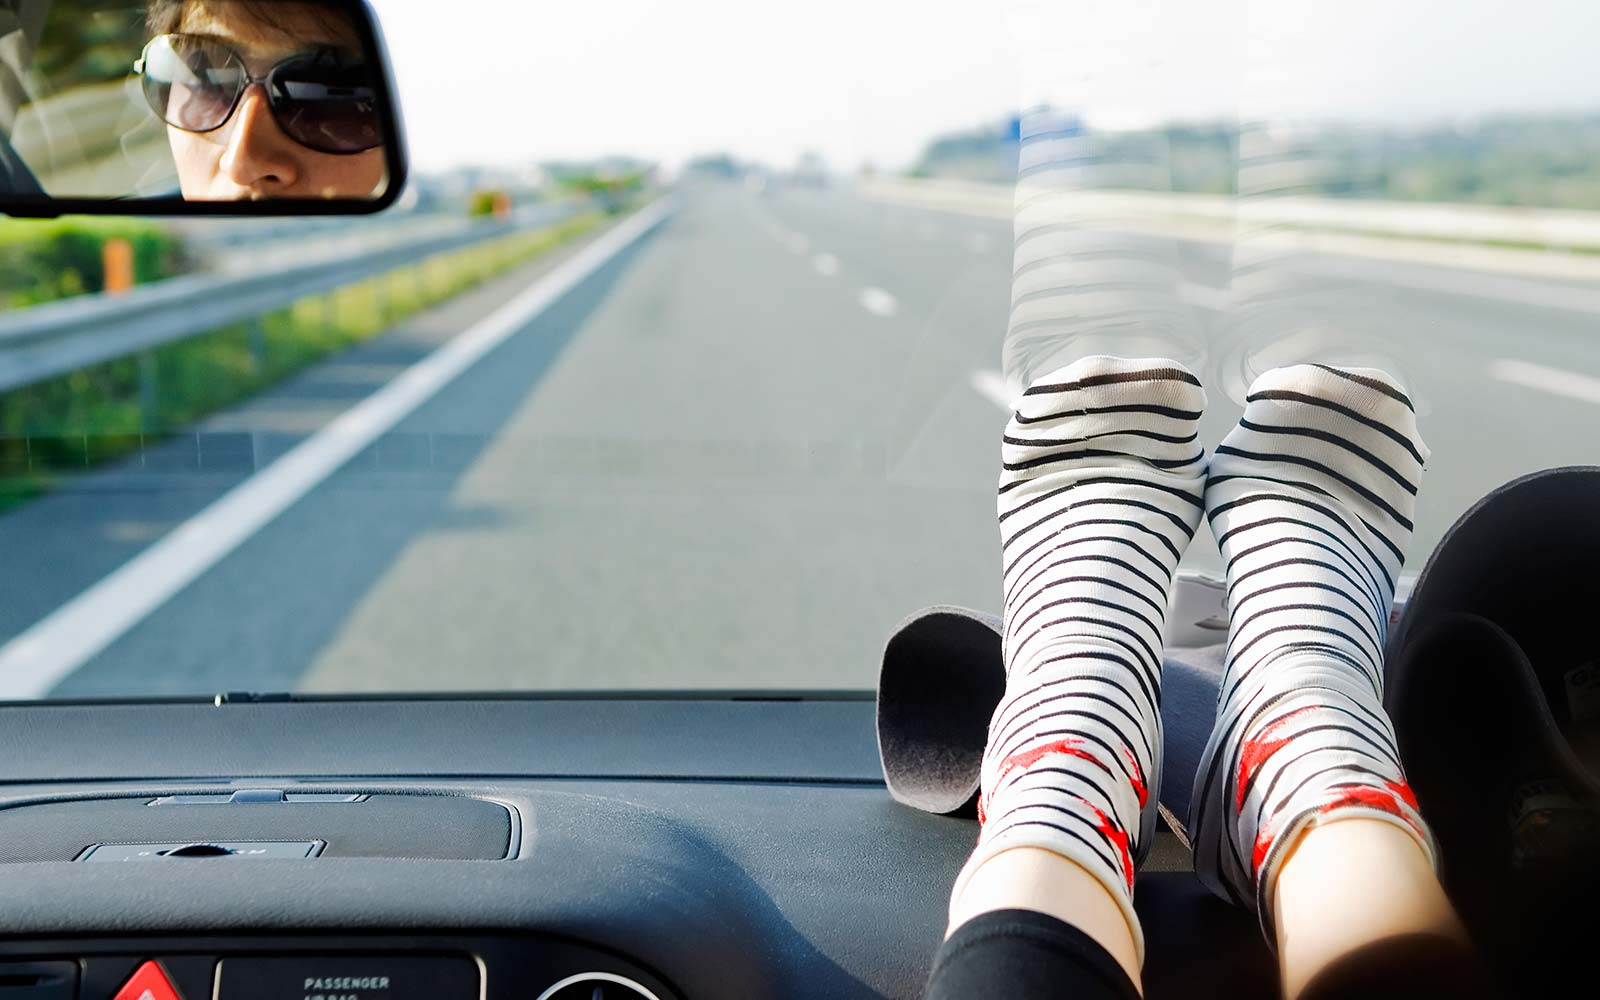 Why You Should Never Ride in a Car With Your Feet on the Dashboard